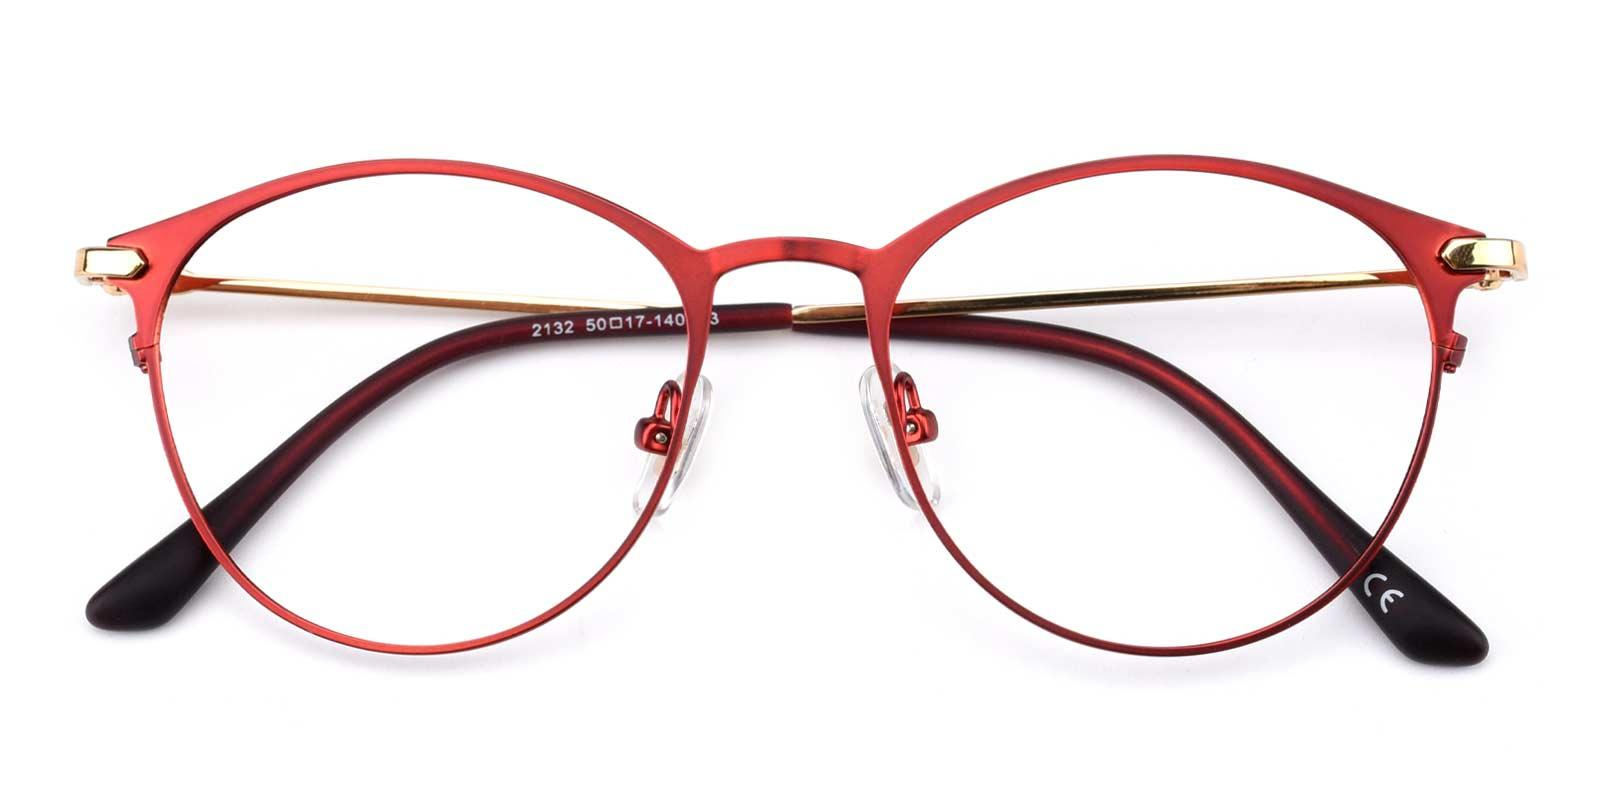 Gosse-Red-Oval-Metal-Eyeglasses-detail